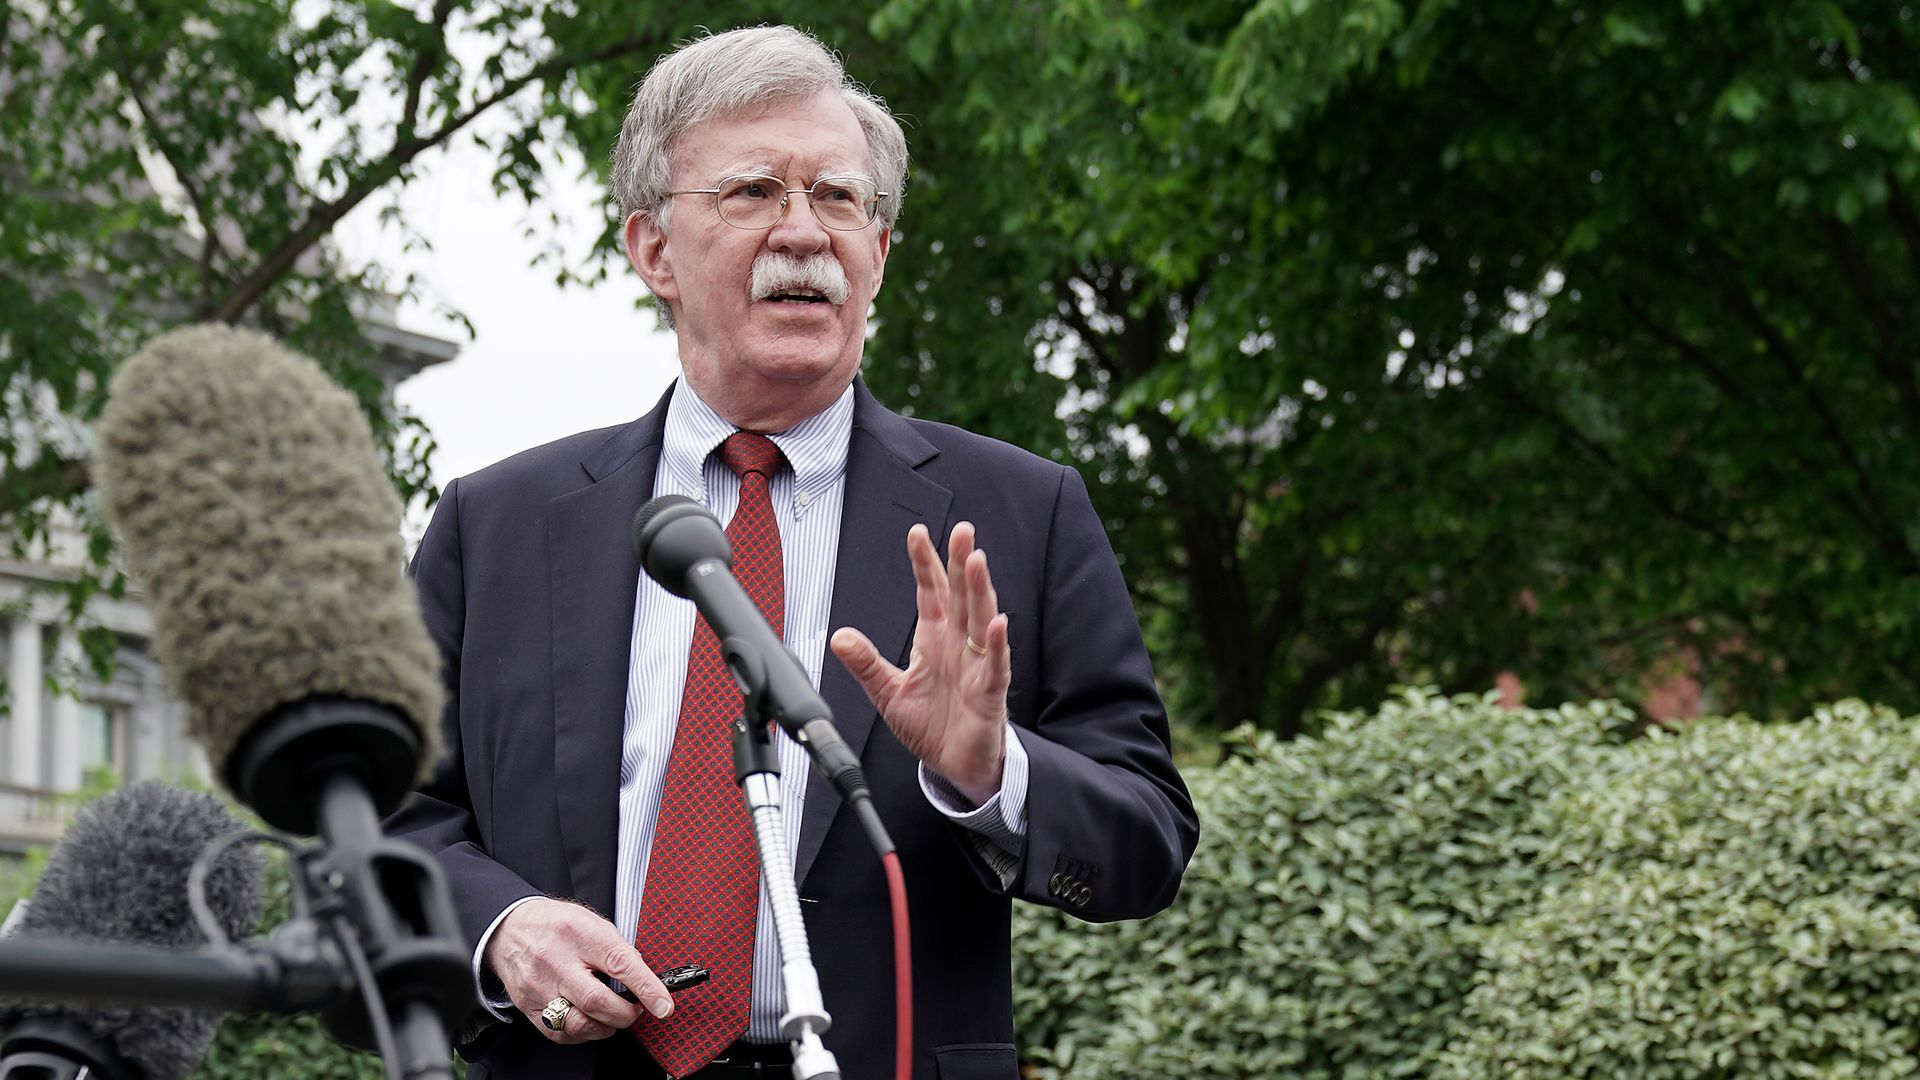 White House National Security Advisor John Bolton talks to reporters in Washington, DC.